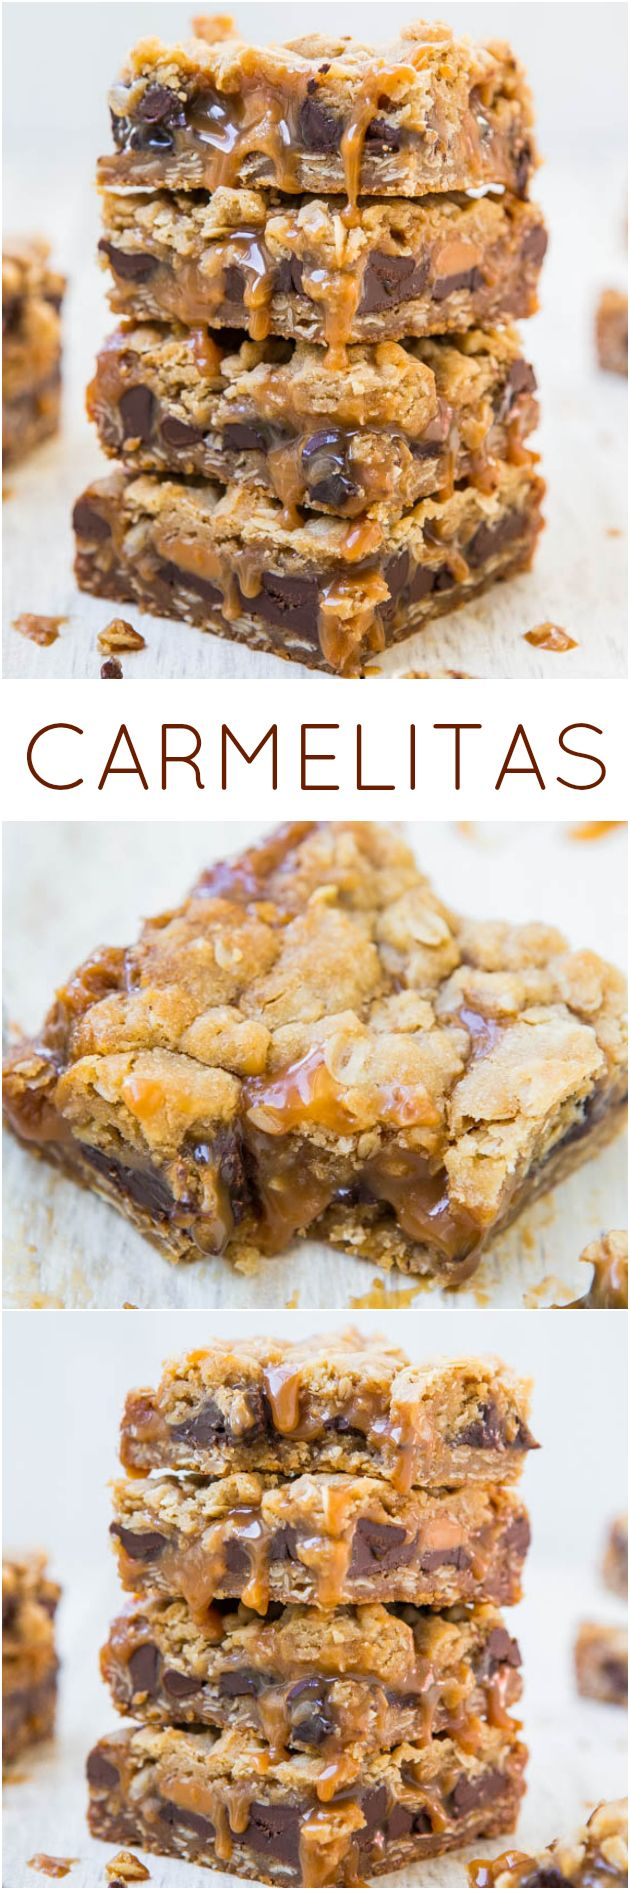 Carmelitas - Easy one-bowl, no-mixer recipe. With a name like that, they have to be good!! #delicious #recipe #cake #desserts #dessertrecipes #yummy #delicious #food #sweet